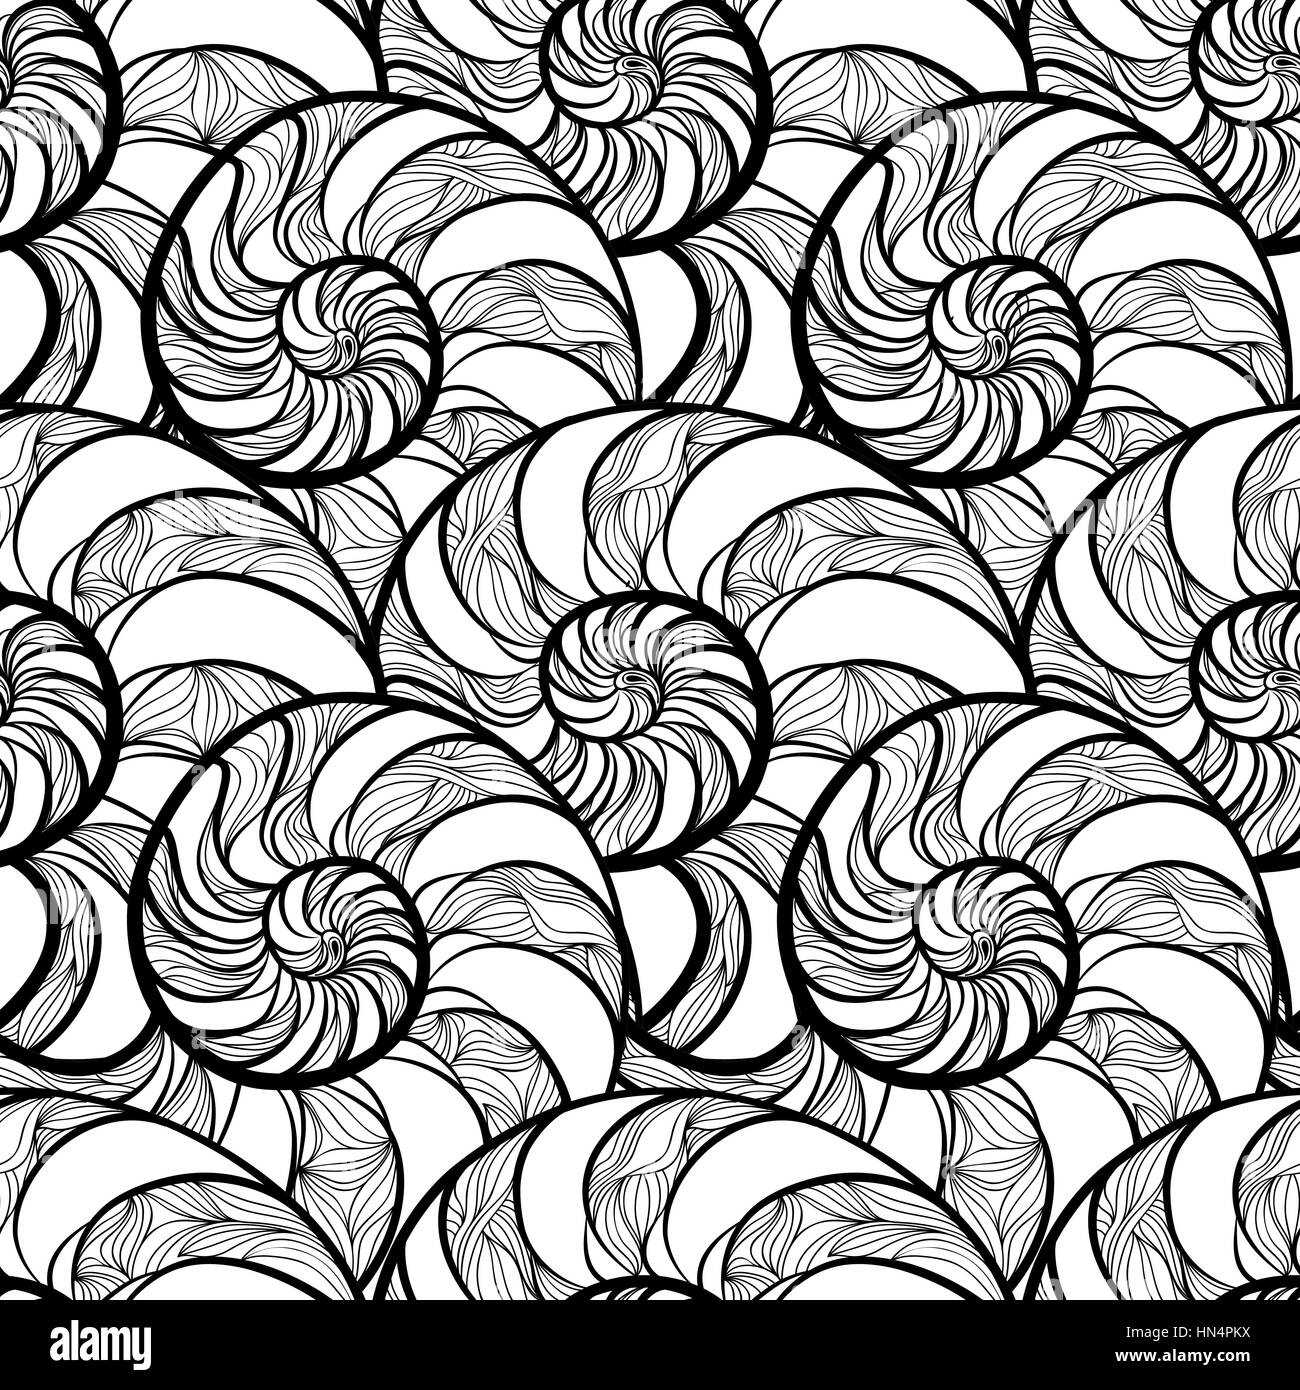 Abstract ornamental spiral seamless black and white outline pattern